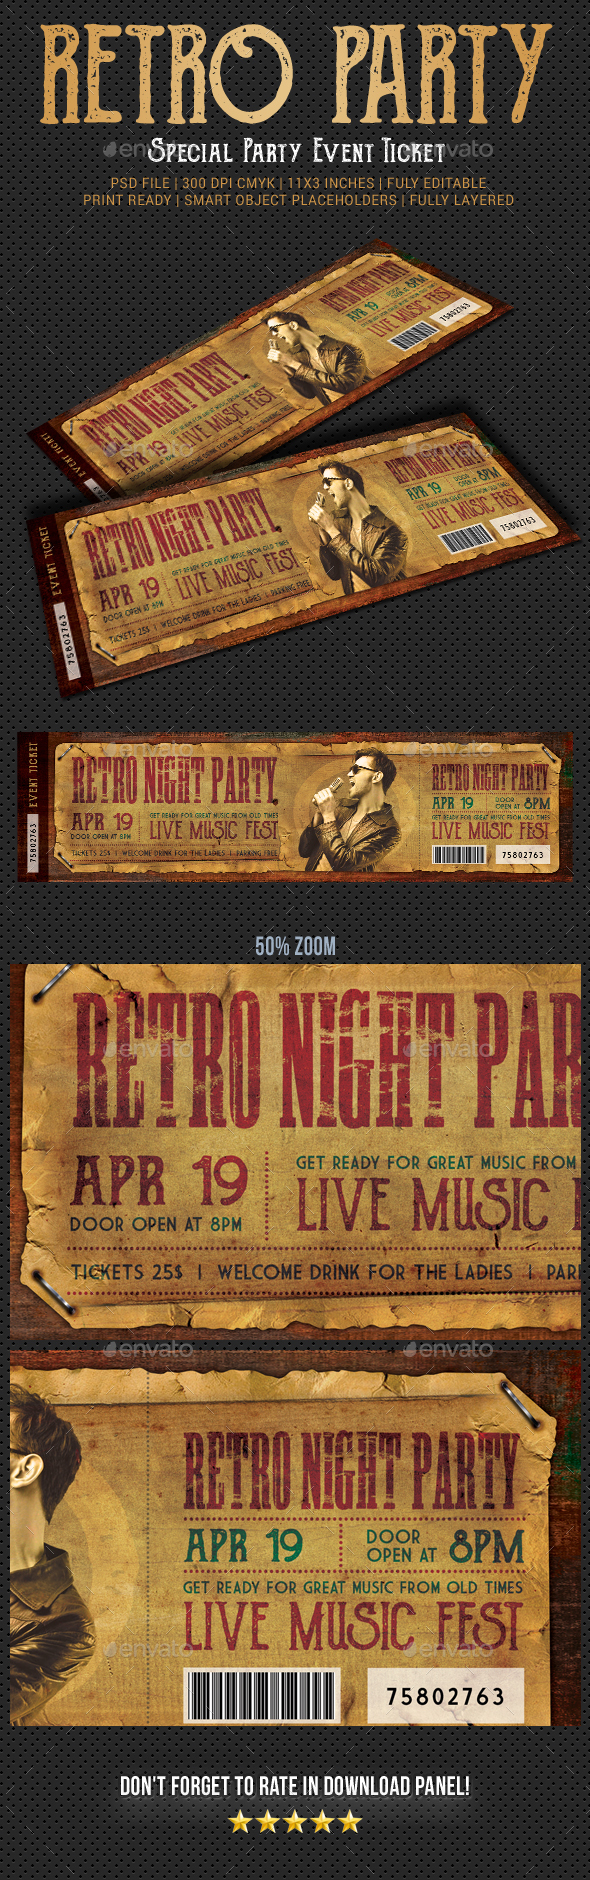 Retro Party Event Ticket - Cards & Invites Print Templates